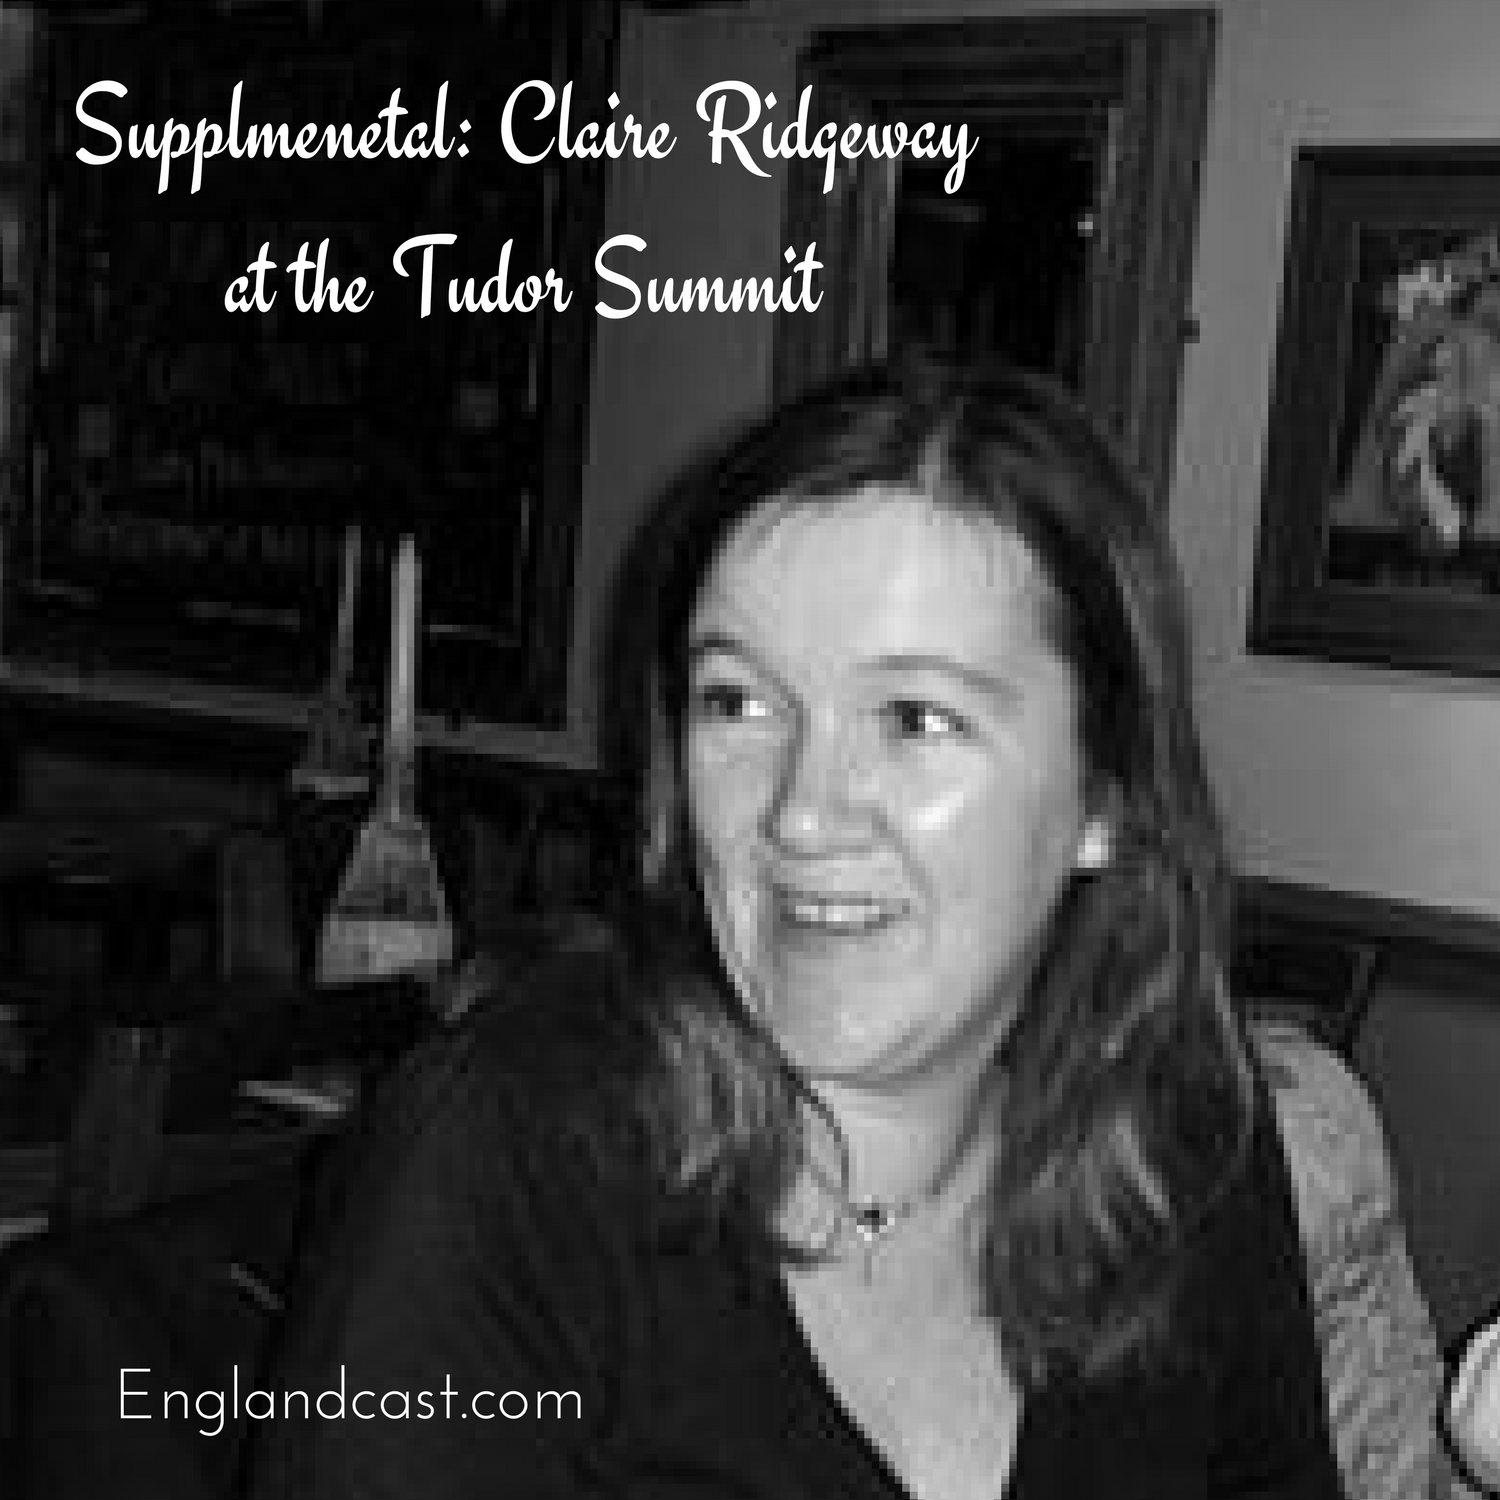 Supplemental: Claire Ridgway at the Tudor Summit